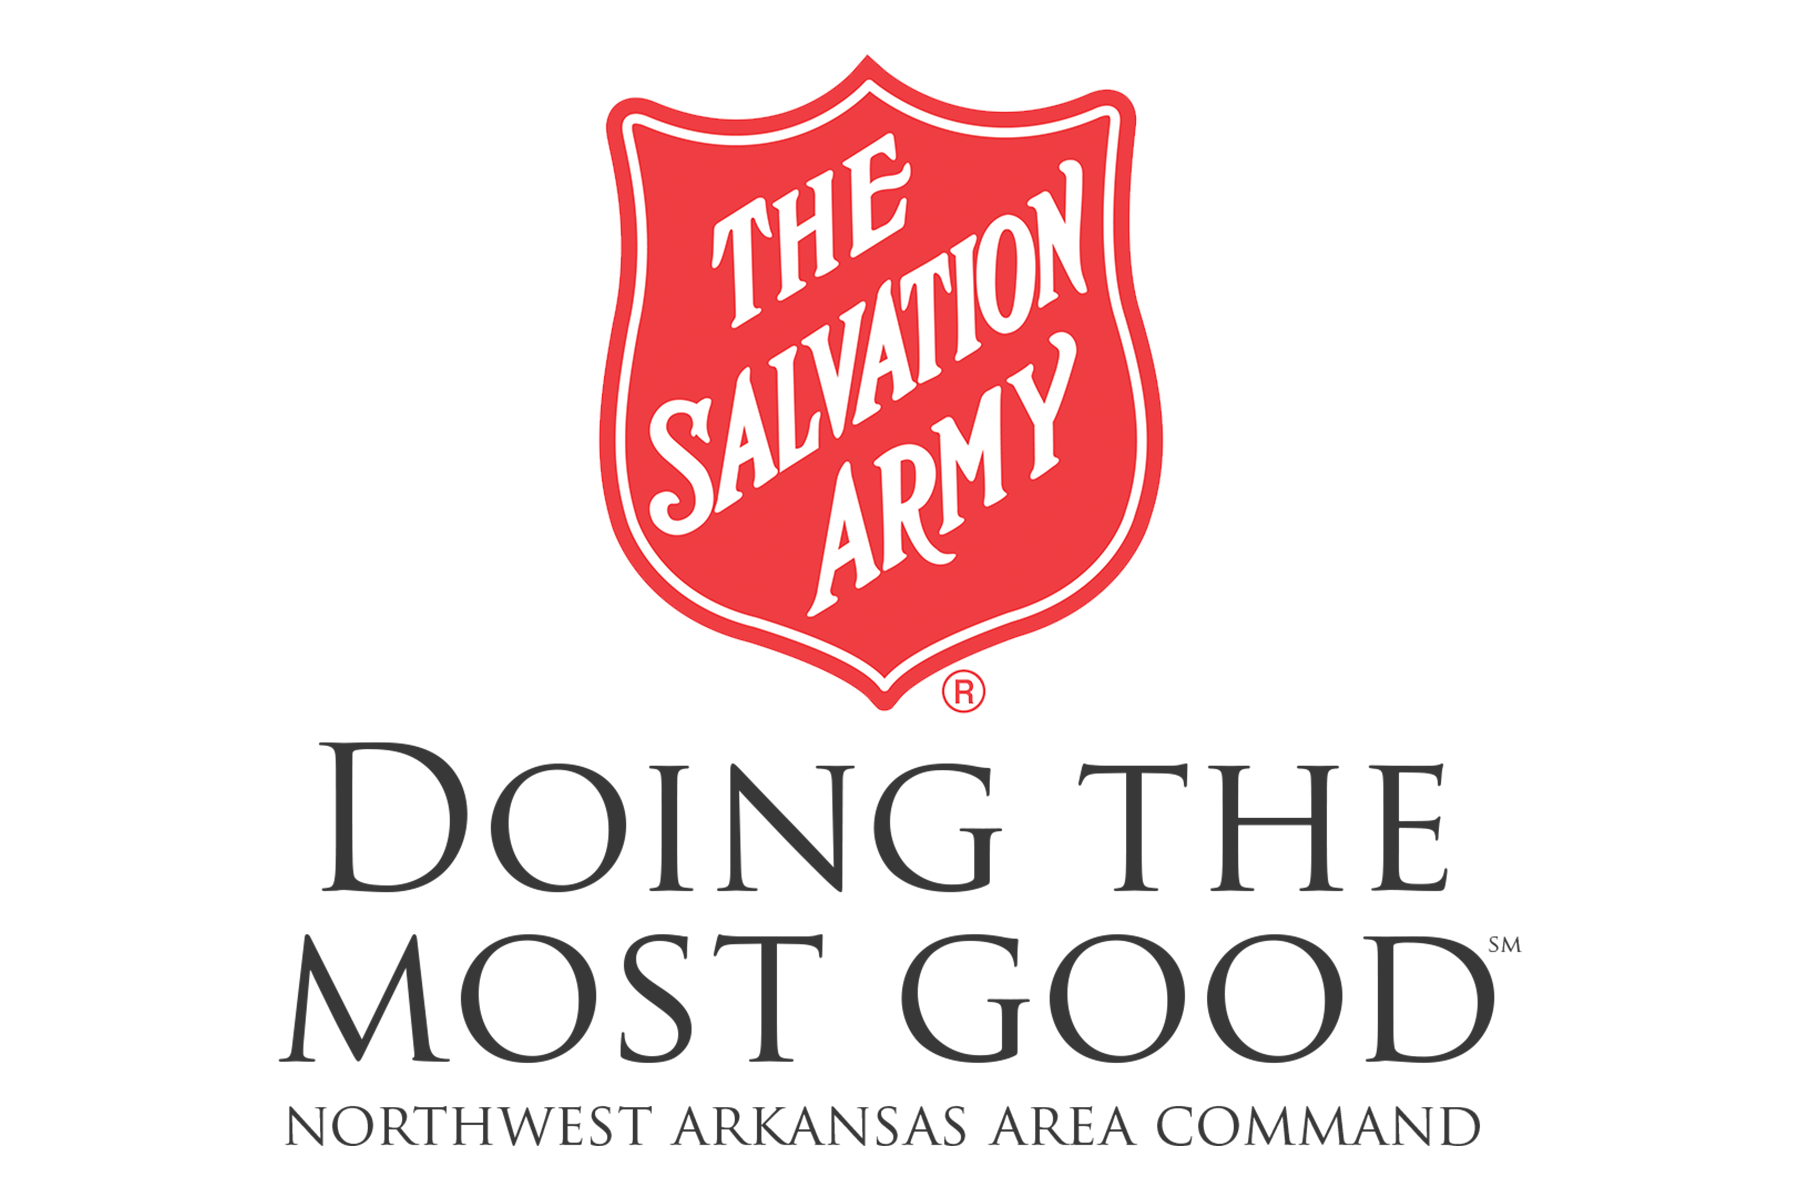 salvation army logo_1468259981572.png